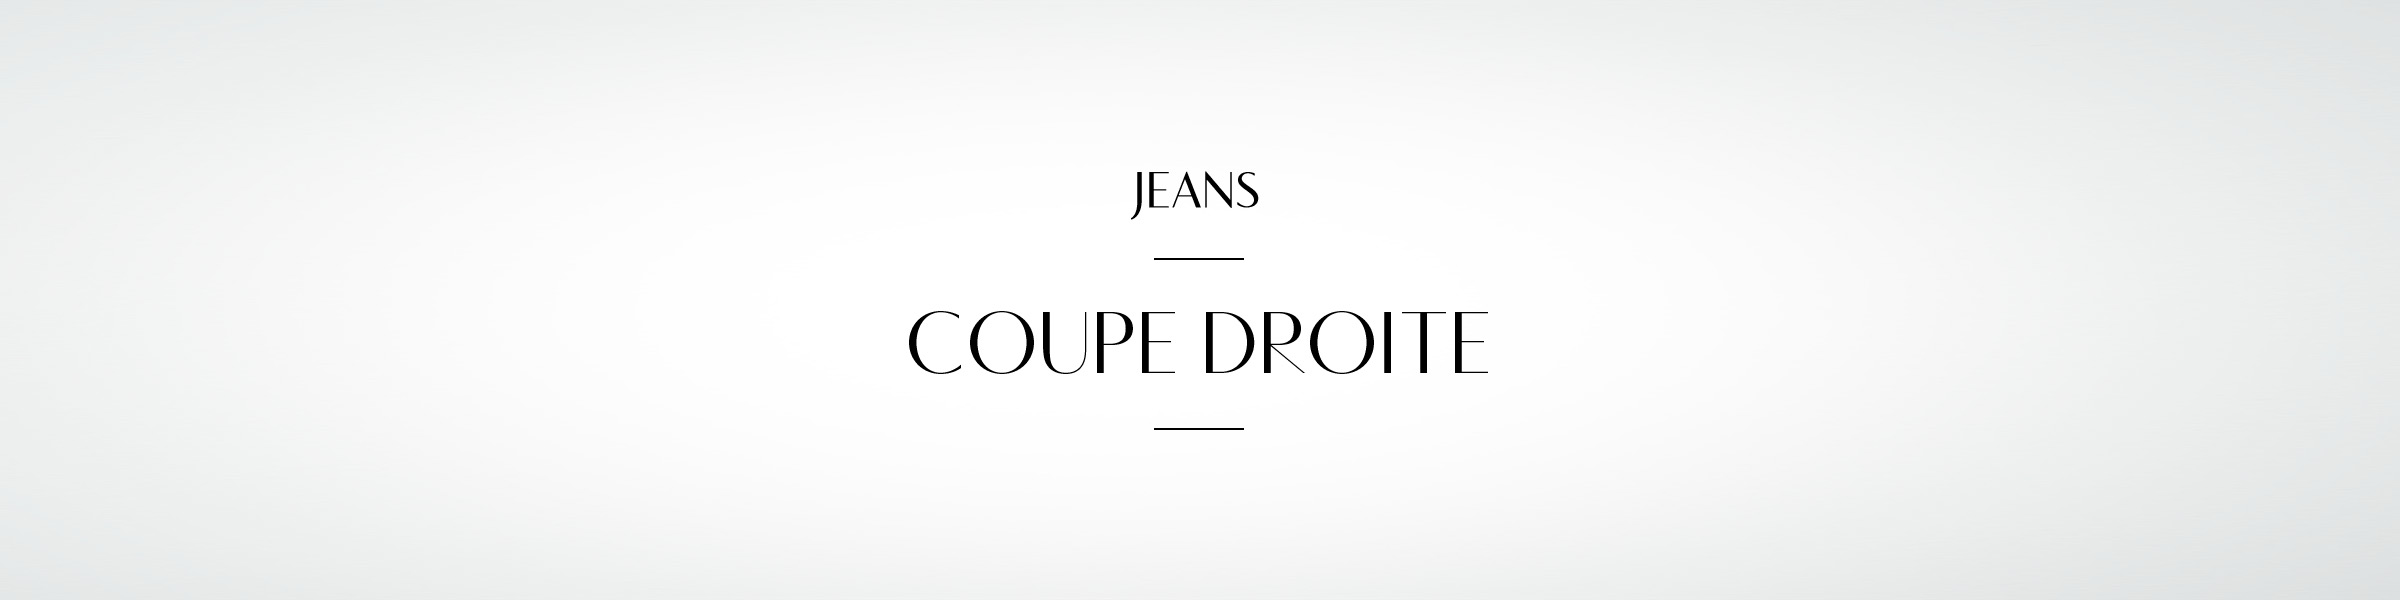 A17-TBGEN-HOMME_Jeans_Coupe droite.psd